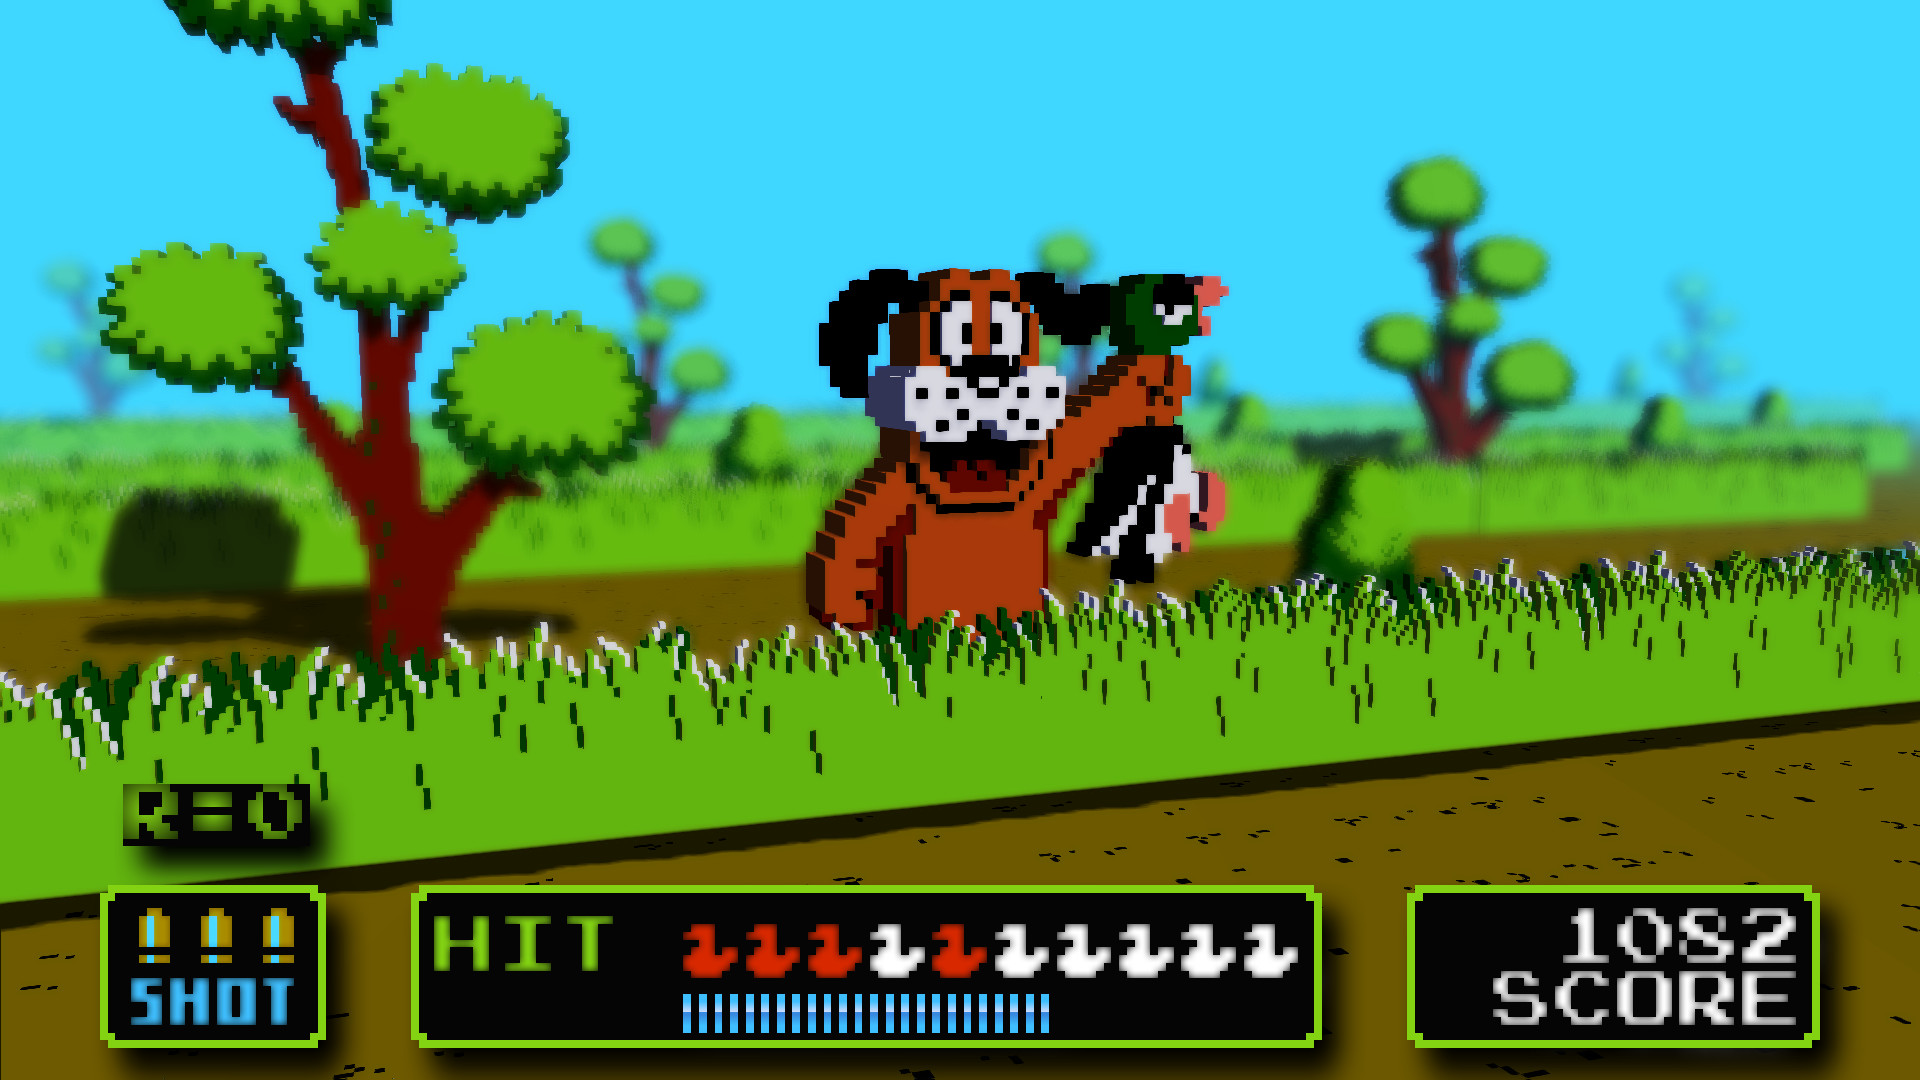 Res: 1920x1080, Duck Hunt in 3D [Wallpaper] - Wallpapers and art - Mine-imator forums